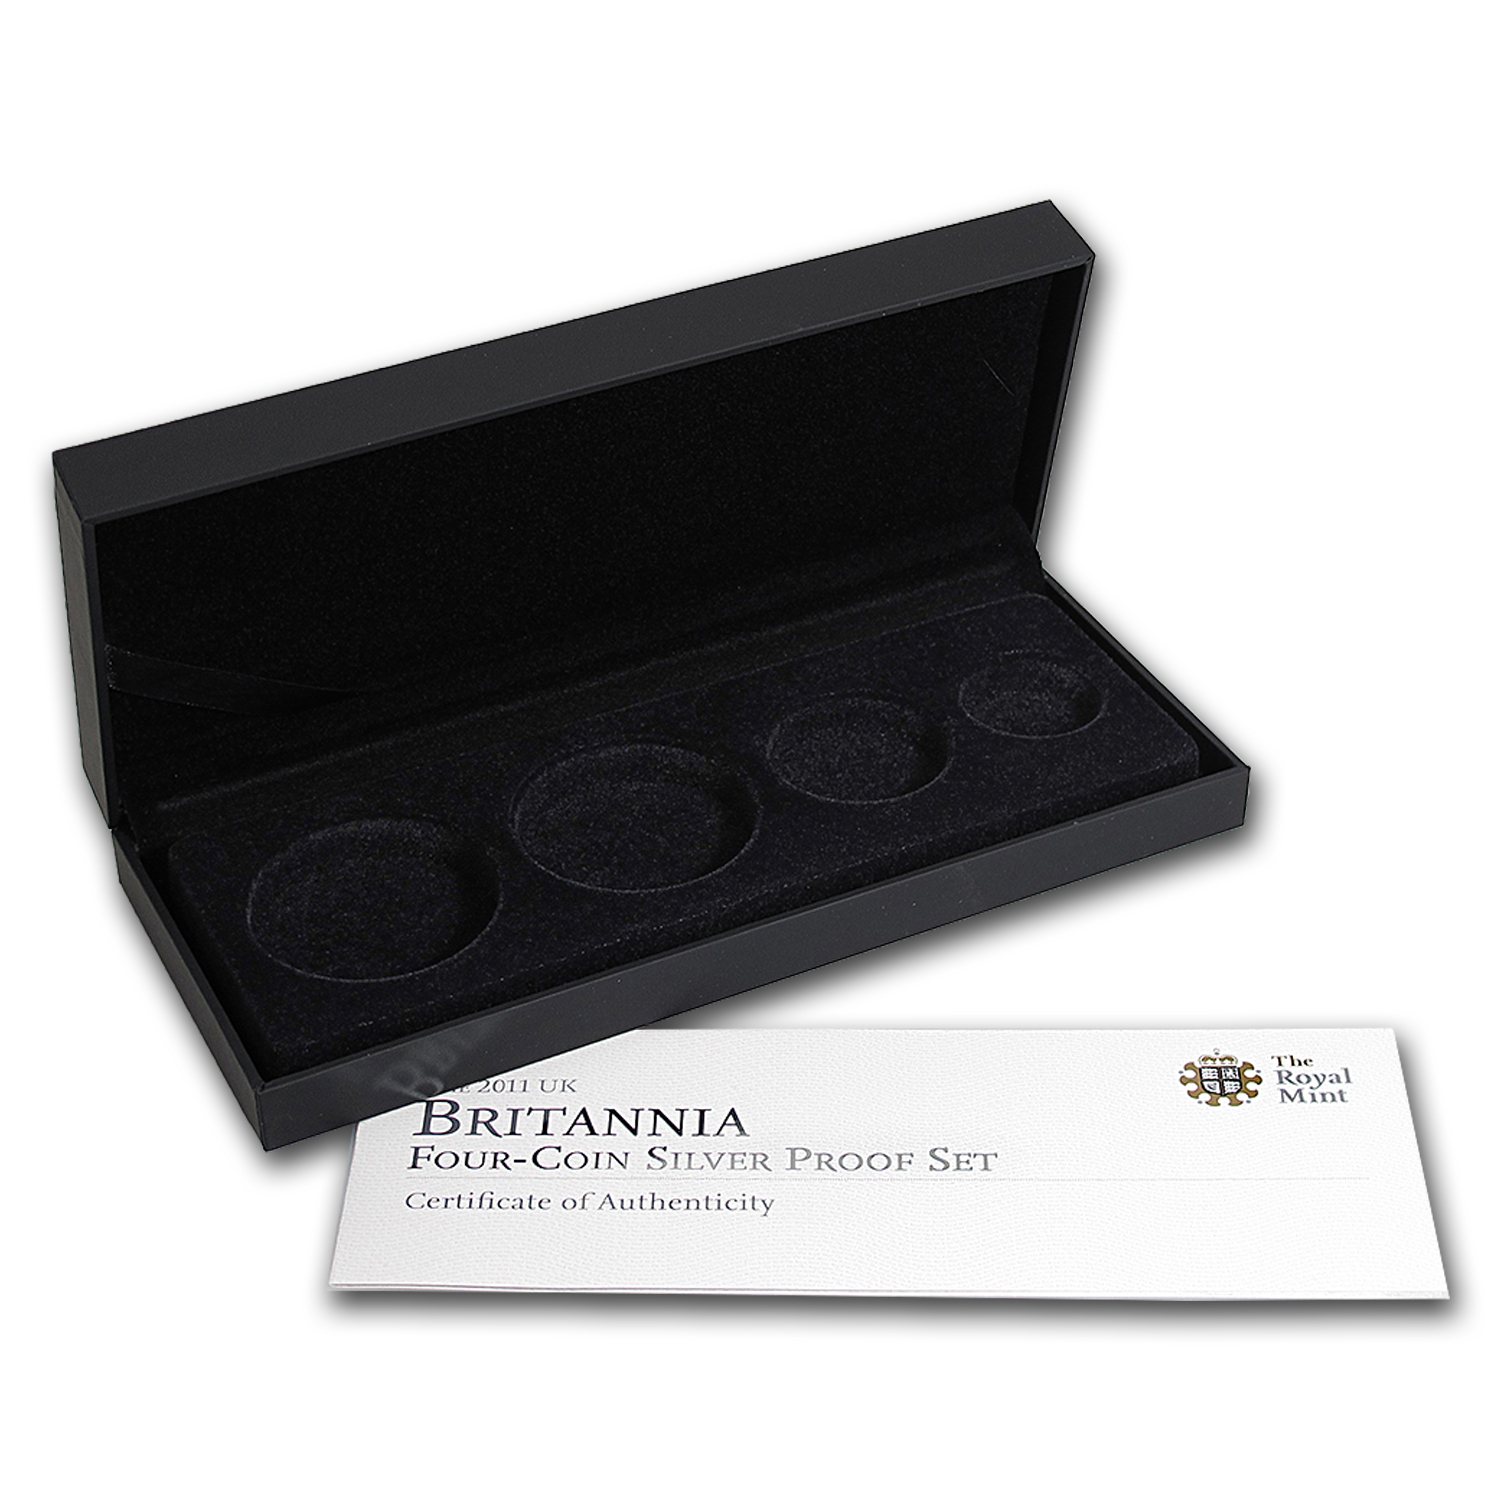 OEM Box & COA - 2011 Royal Mint 4-Coin Silver Proof Britannia Set